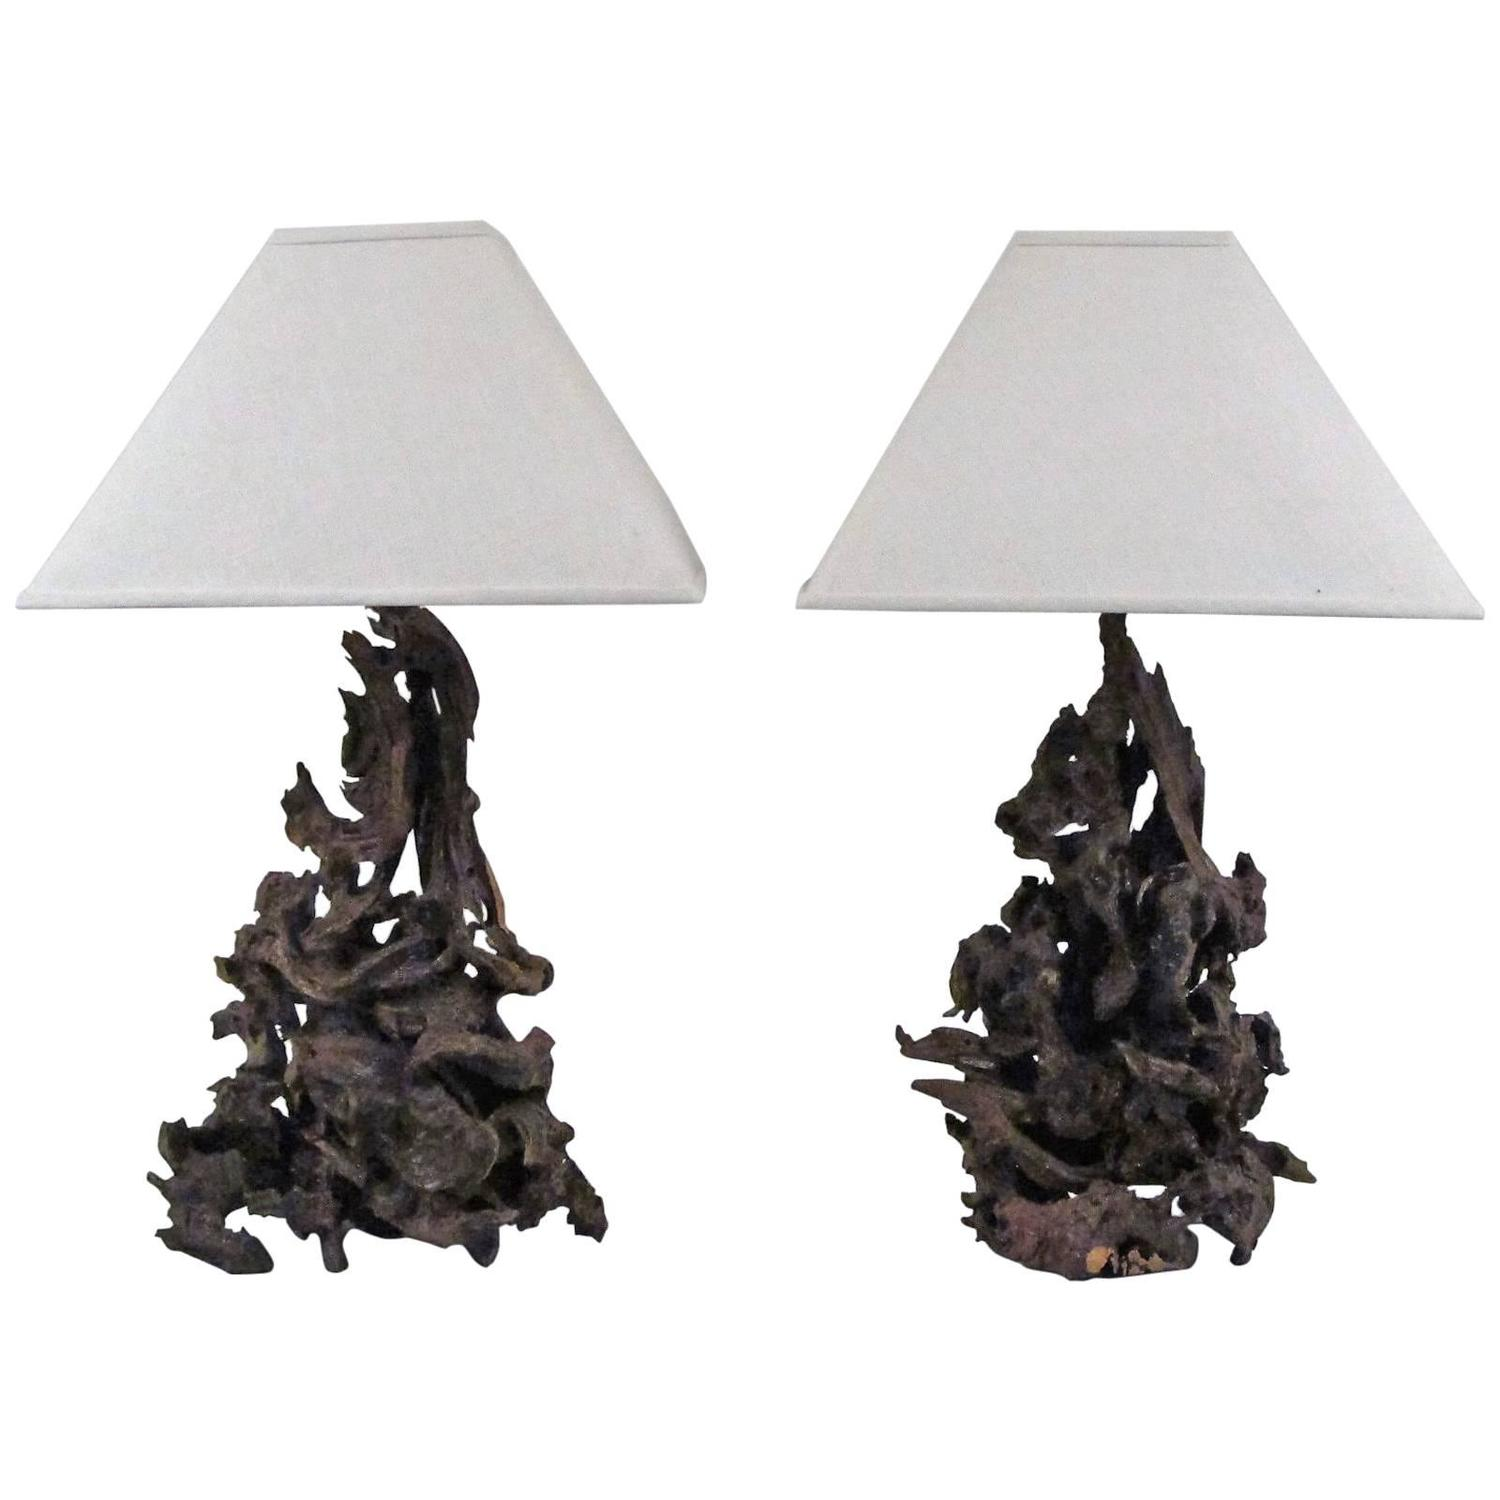 Pair of handmade burl driftwood table lamps at 1stdibs for Driftwood tables handmade